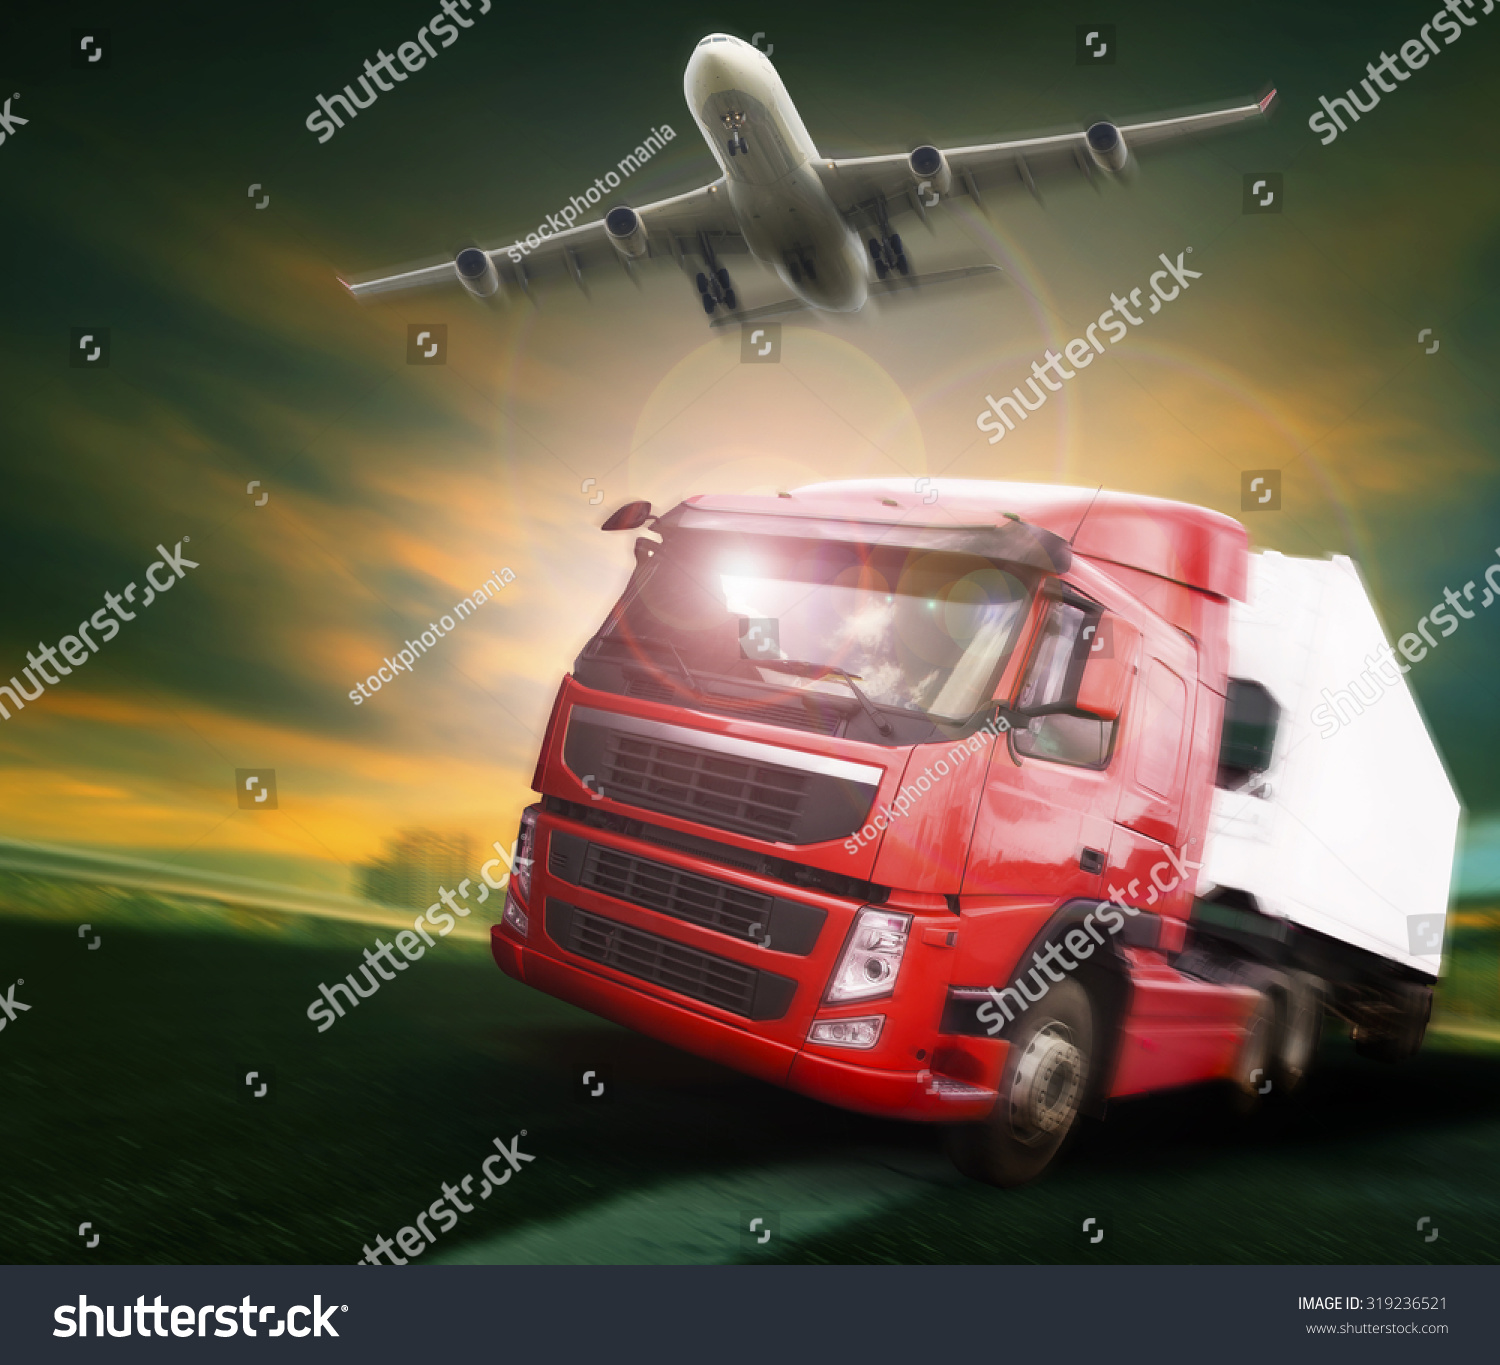 container truck and freight cargo plane flying above in land and air logistic transport industry